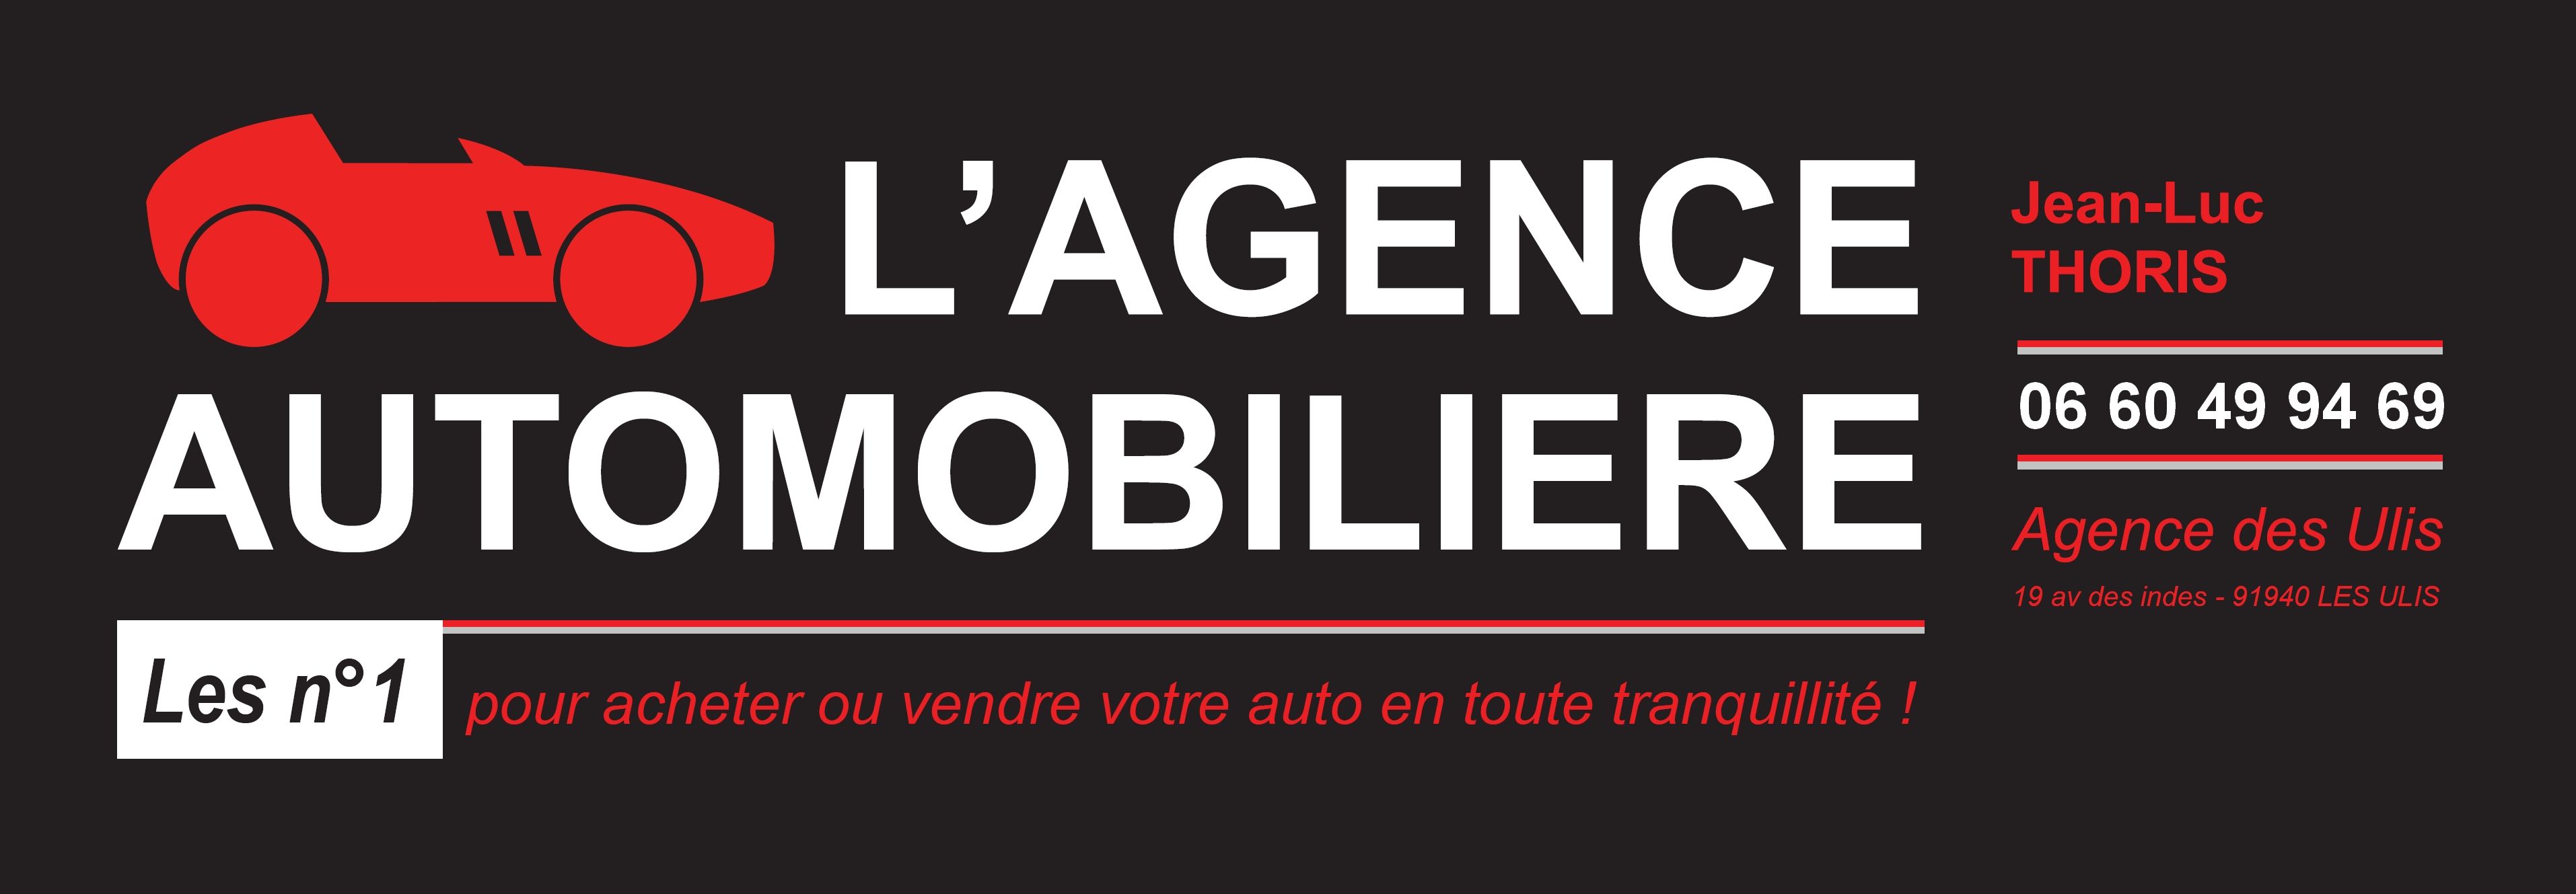 AGENCE L AUTOMOBILIERE Logo